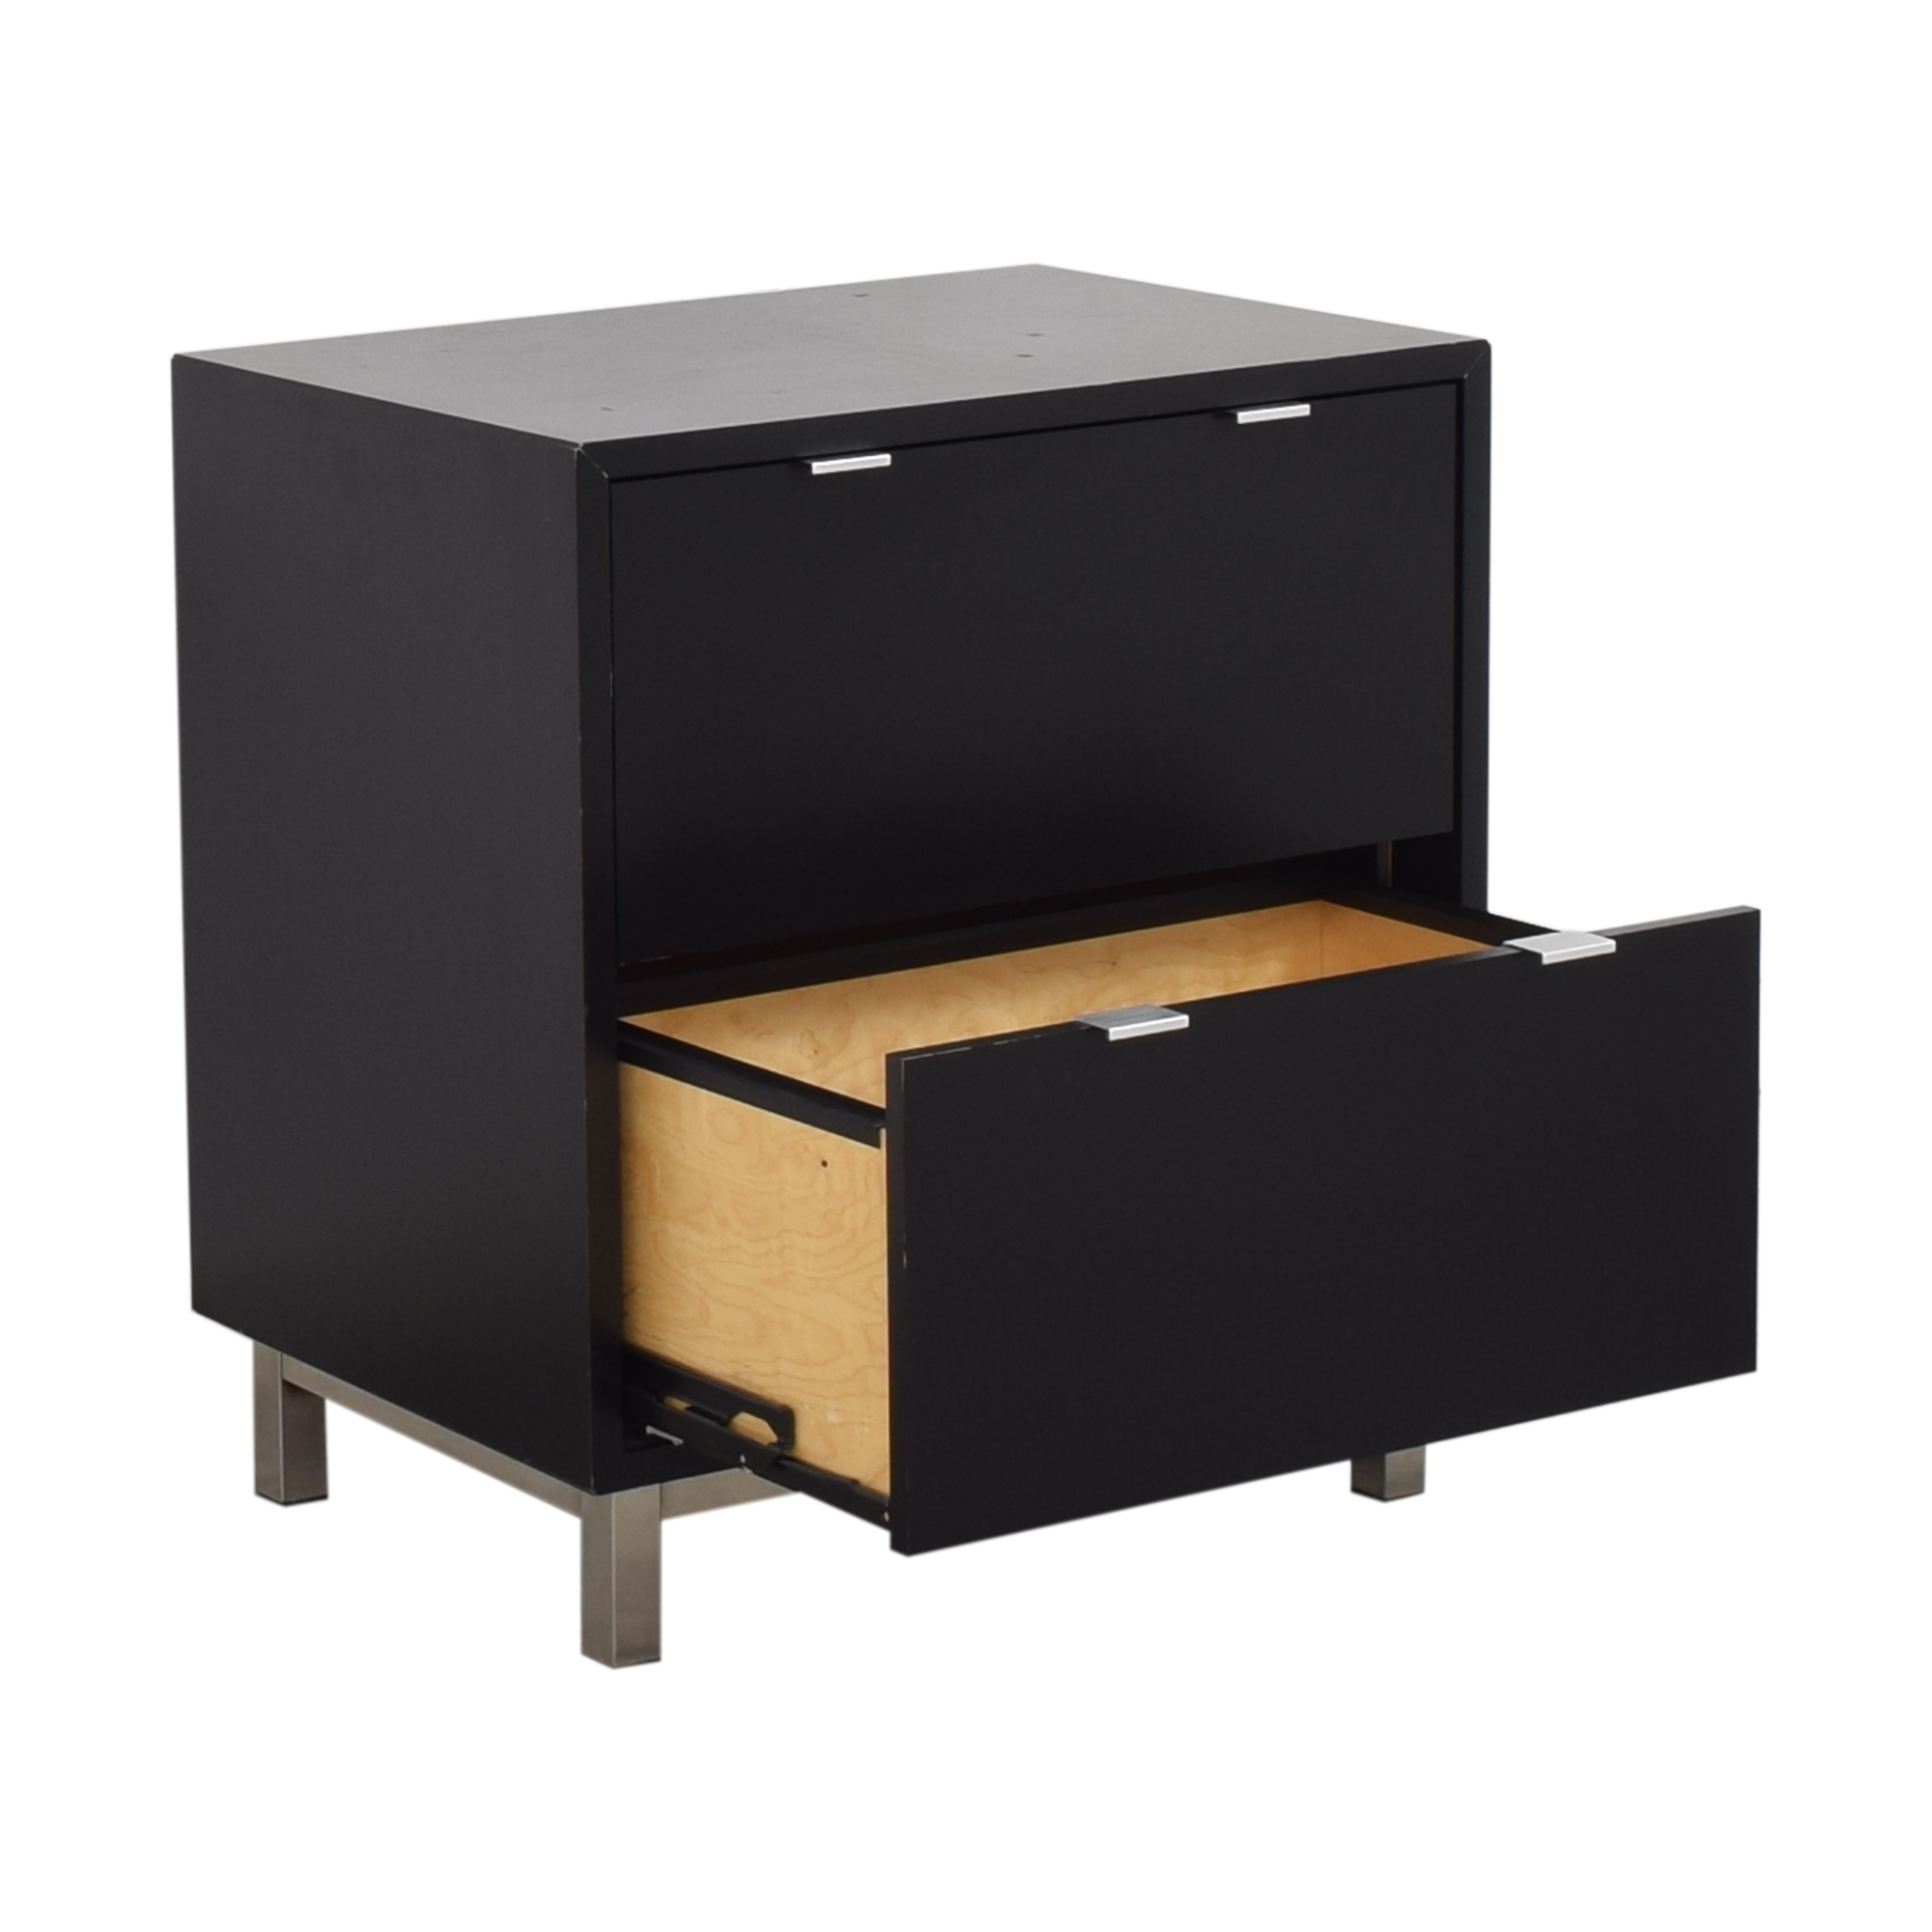 Room & Board Copenhagen Lateral File Cabinet Room & Board